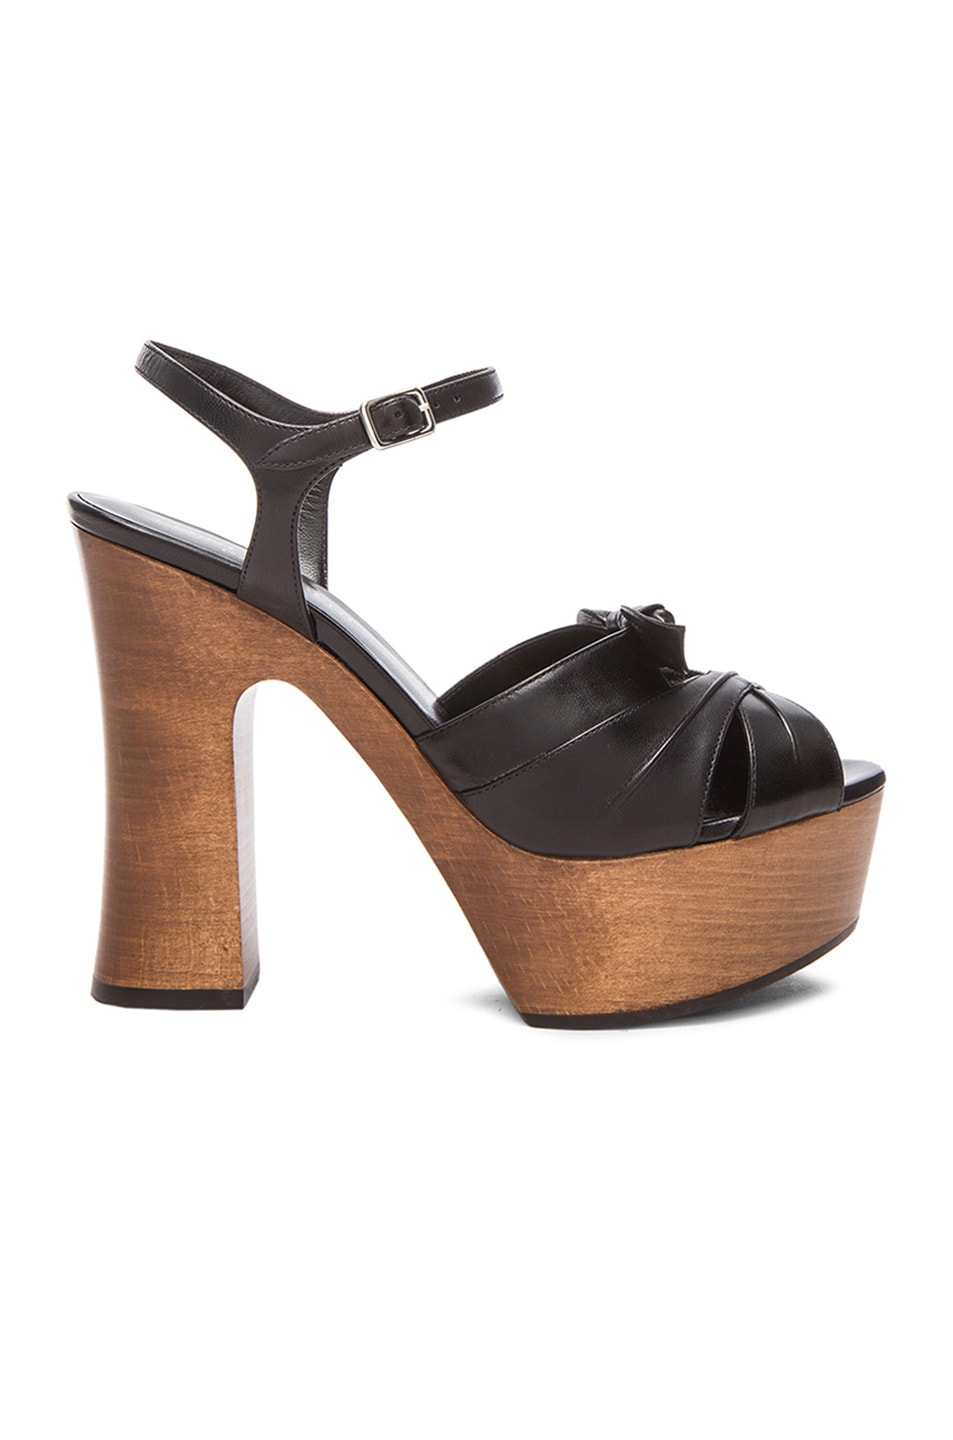 brand new unisex Yves Saint Laurent Bow-Accented Leather Sandals countdown package online Fsgo2dF